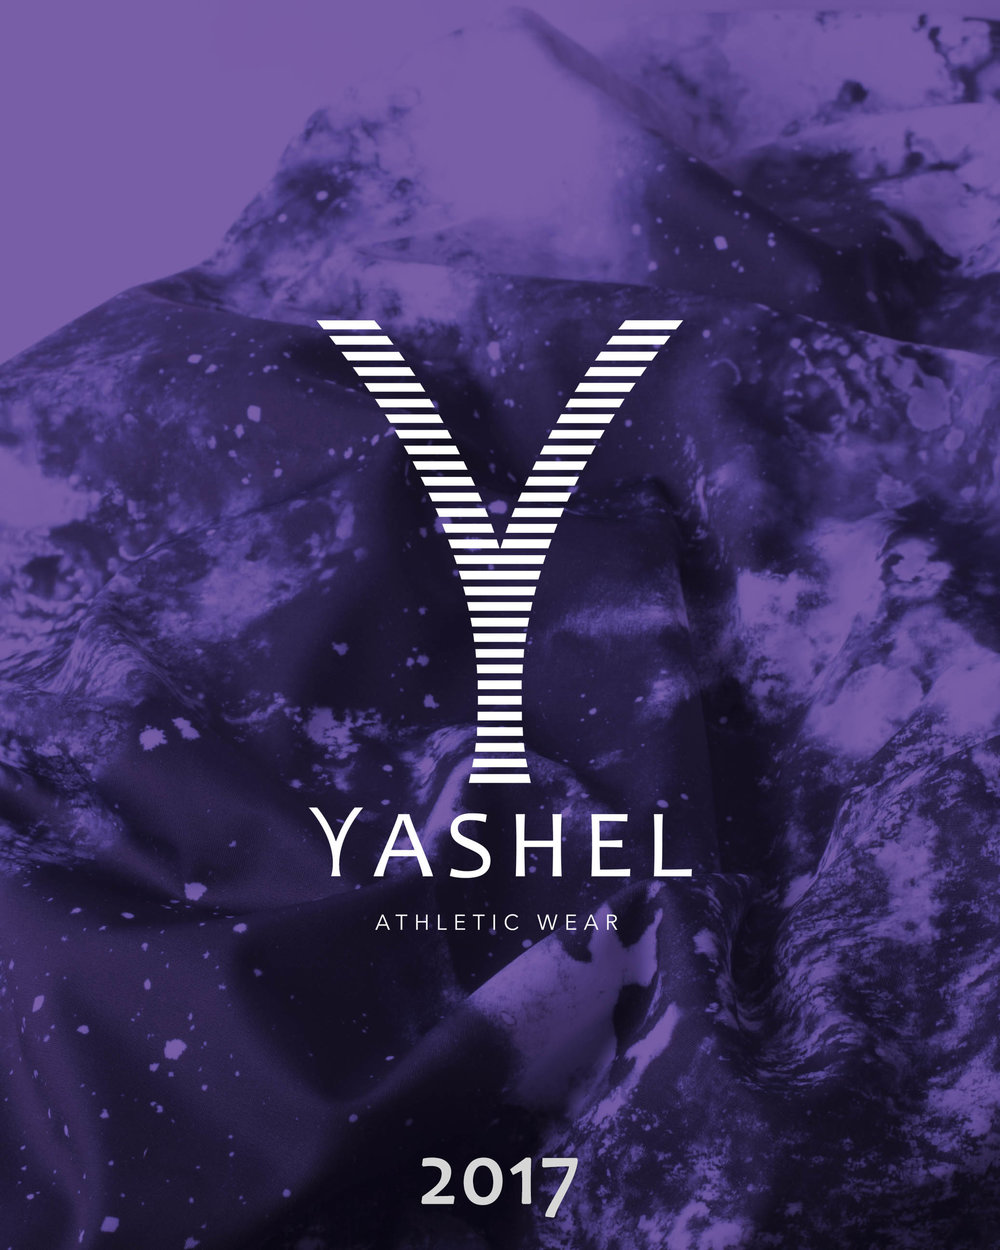 Yashel Athletic Wear.jpg